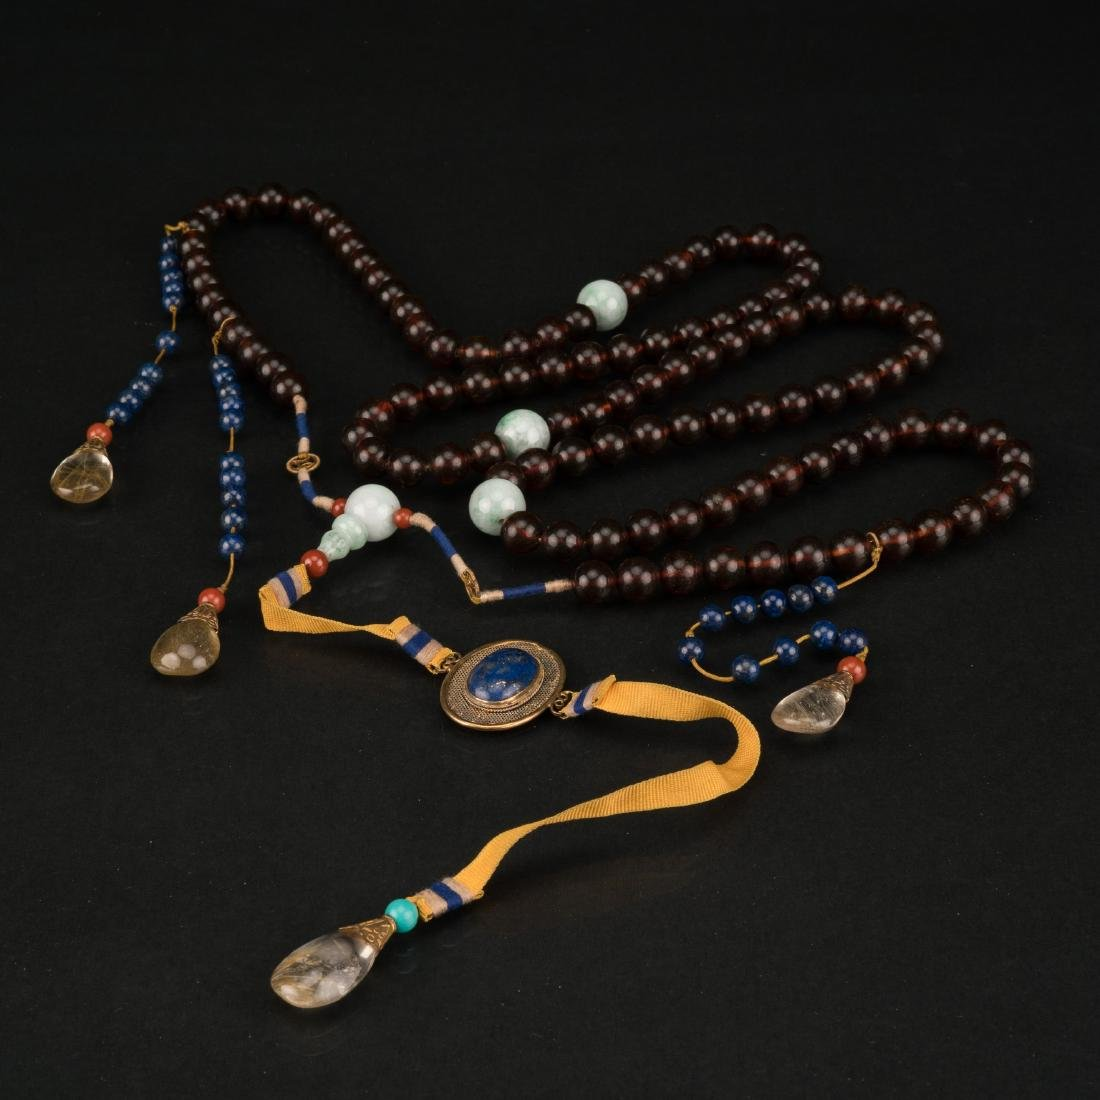 QING AMBER CHAOZHU COURT NECKLACE